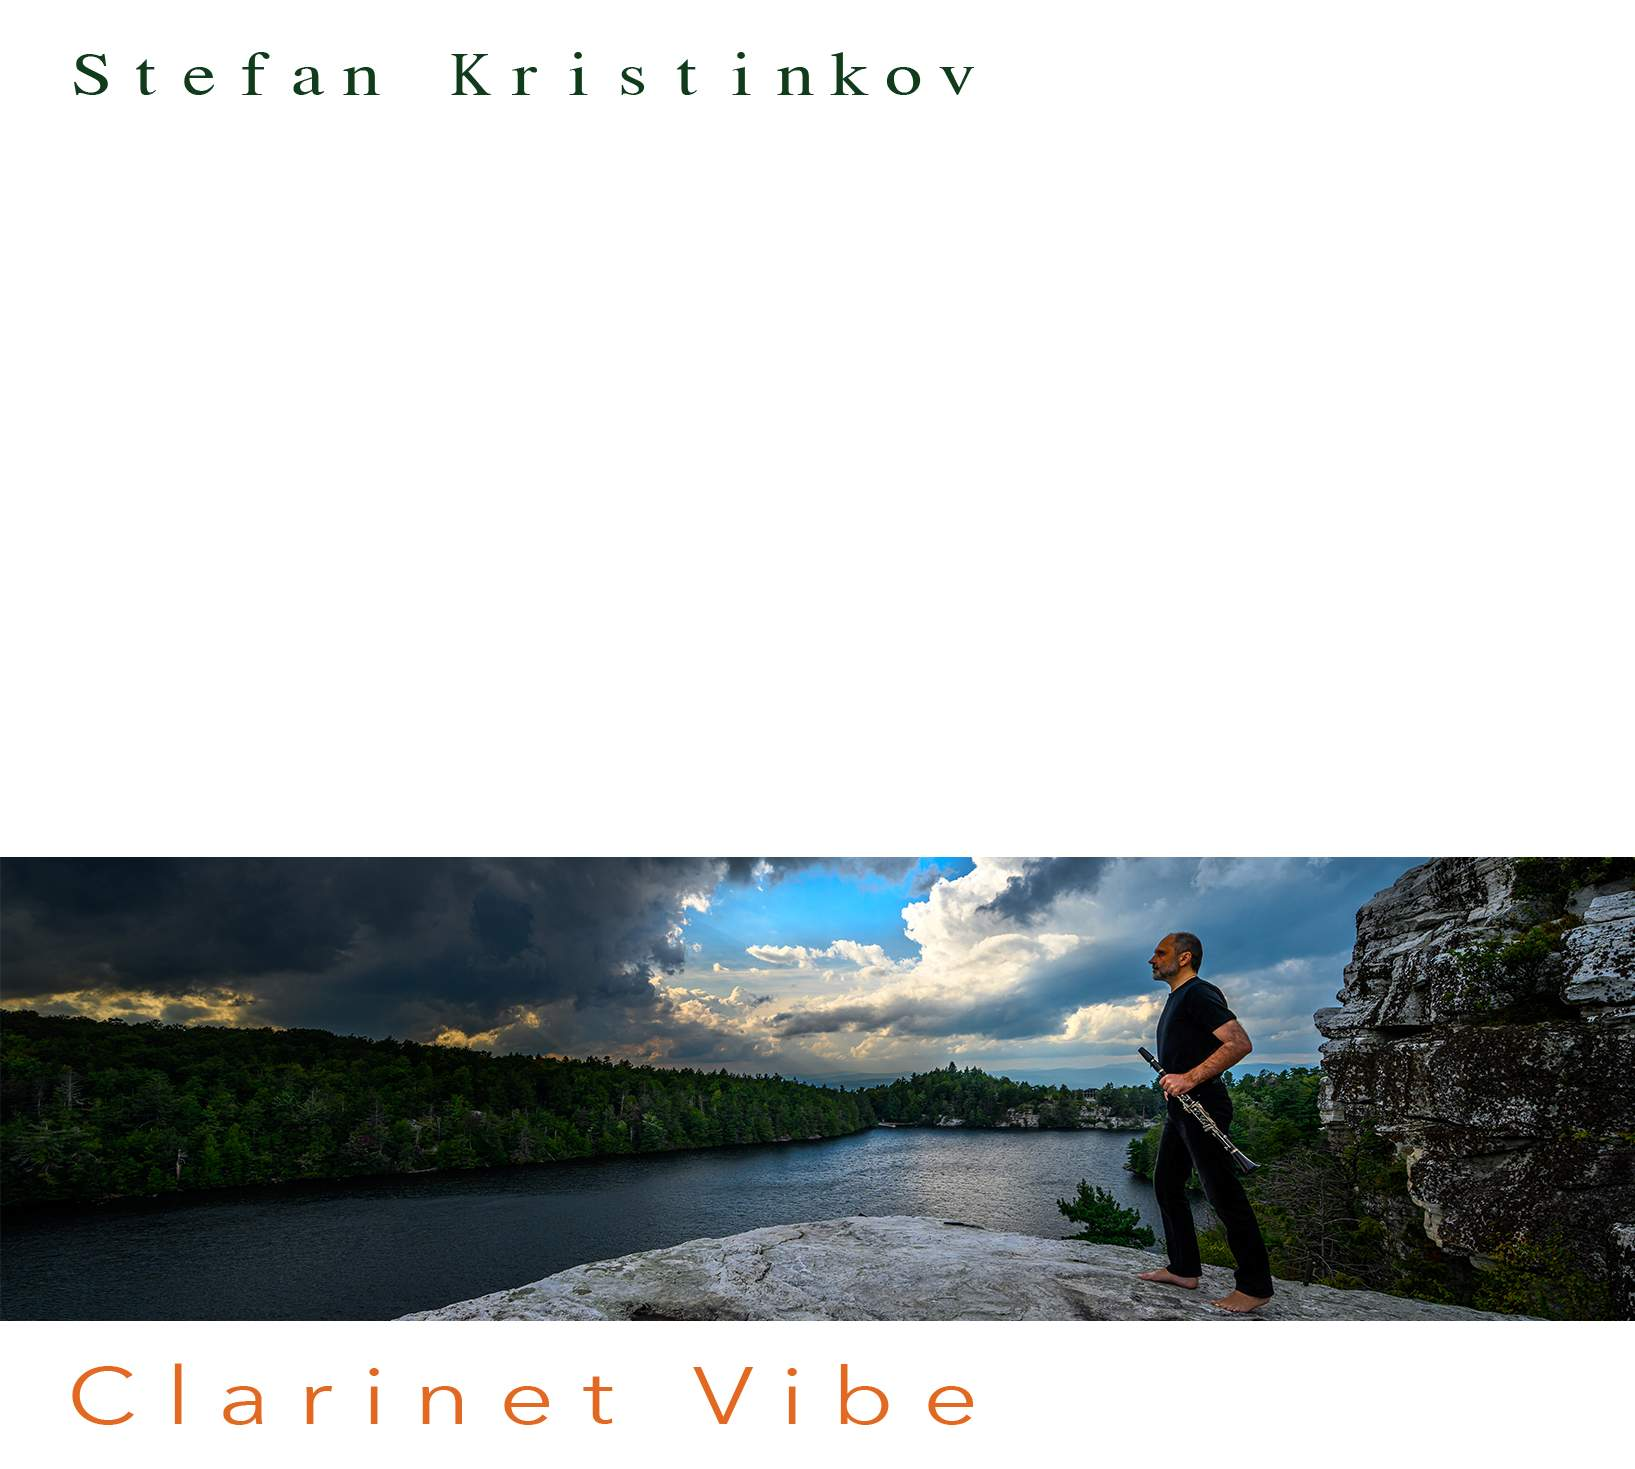 Exploring The Notion of Limited Timbral Diversity through Rich Jazz Fusions and Clarinet: Brooklyn Based Artist Stefan Kristinkov Introduces New EP